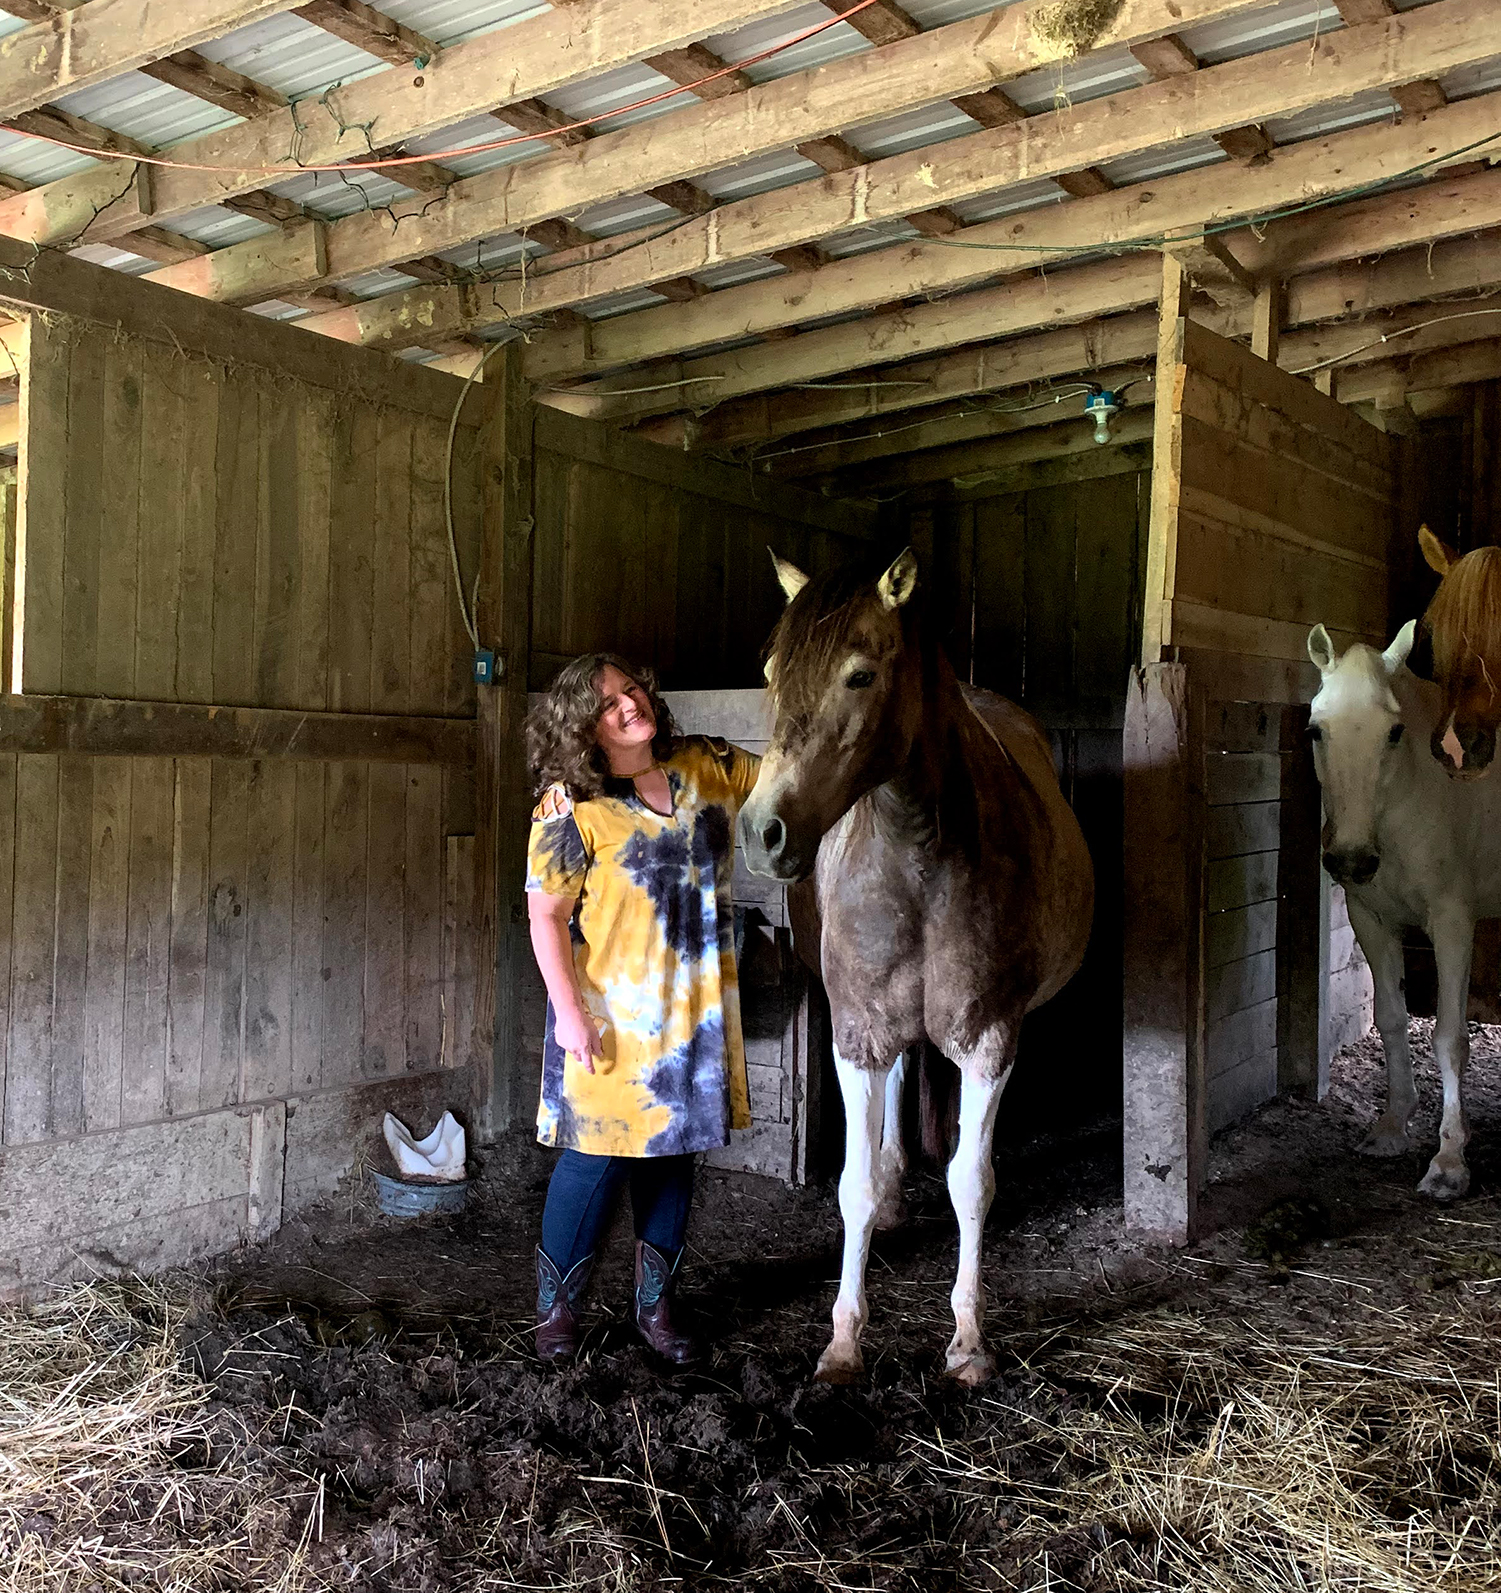 Ohio's Winding Road Stories: Journey With Horses